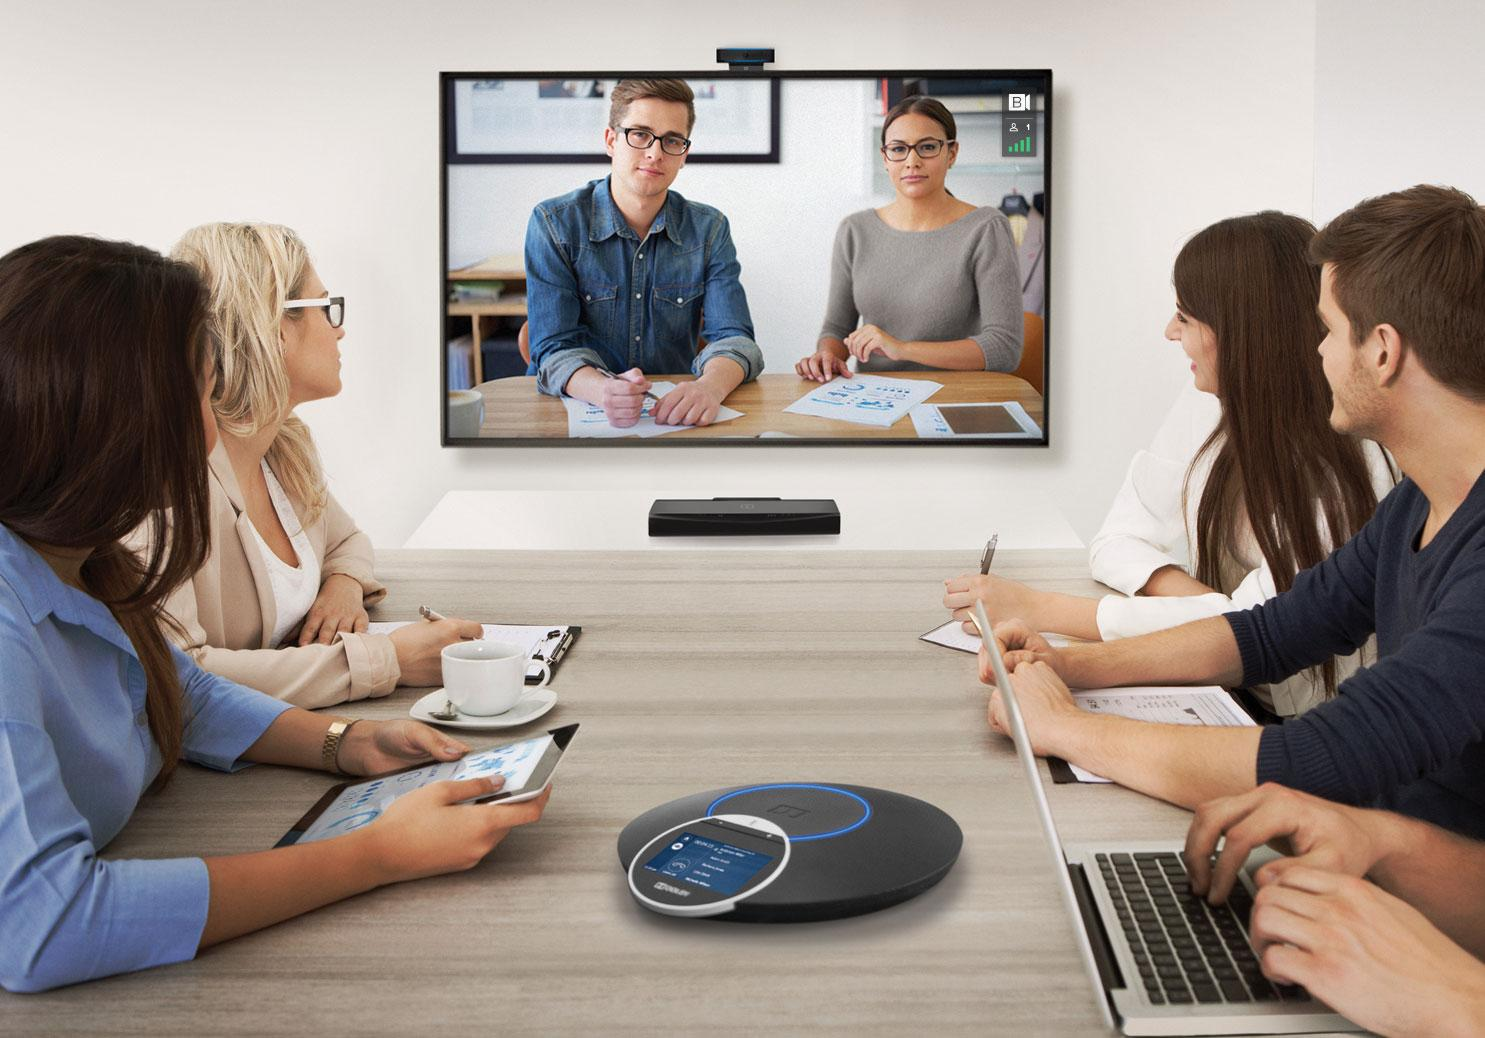 Conference Room Video Calls